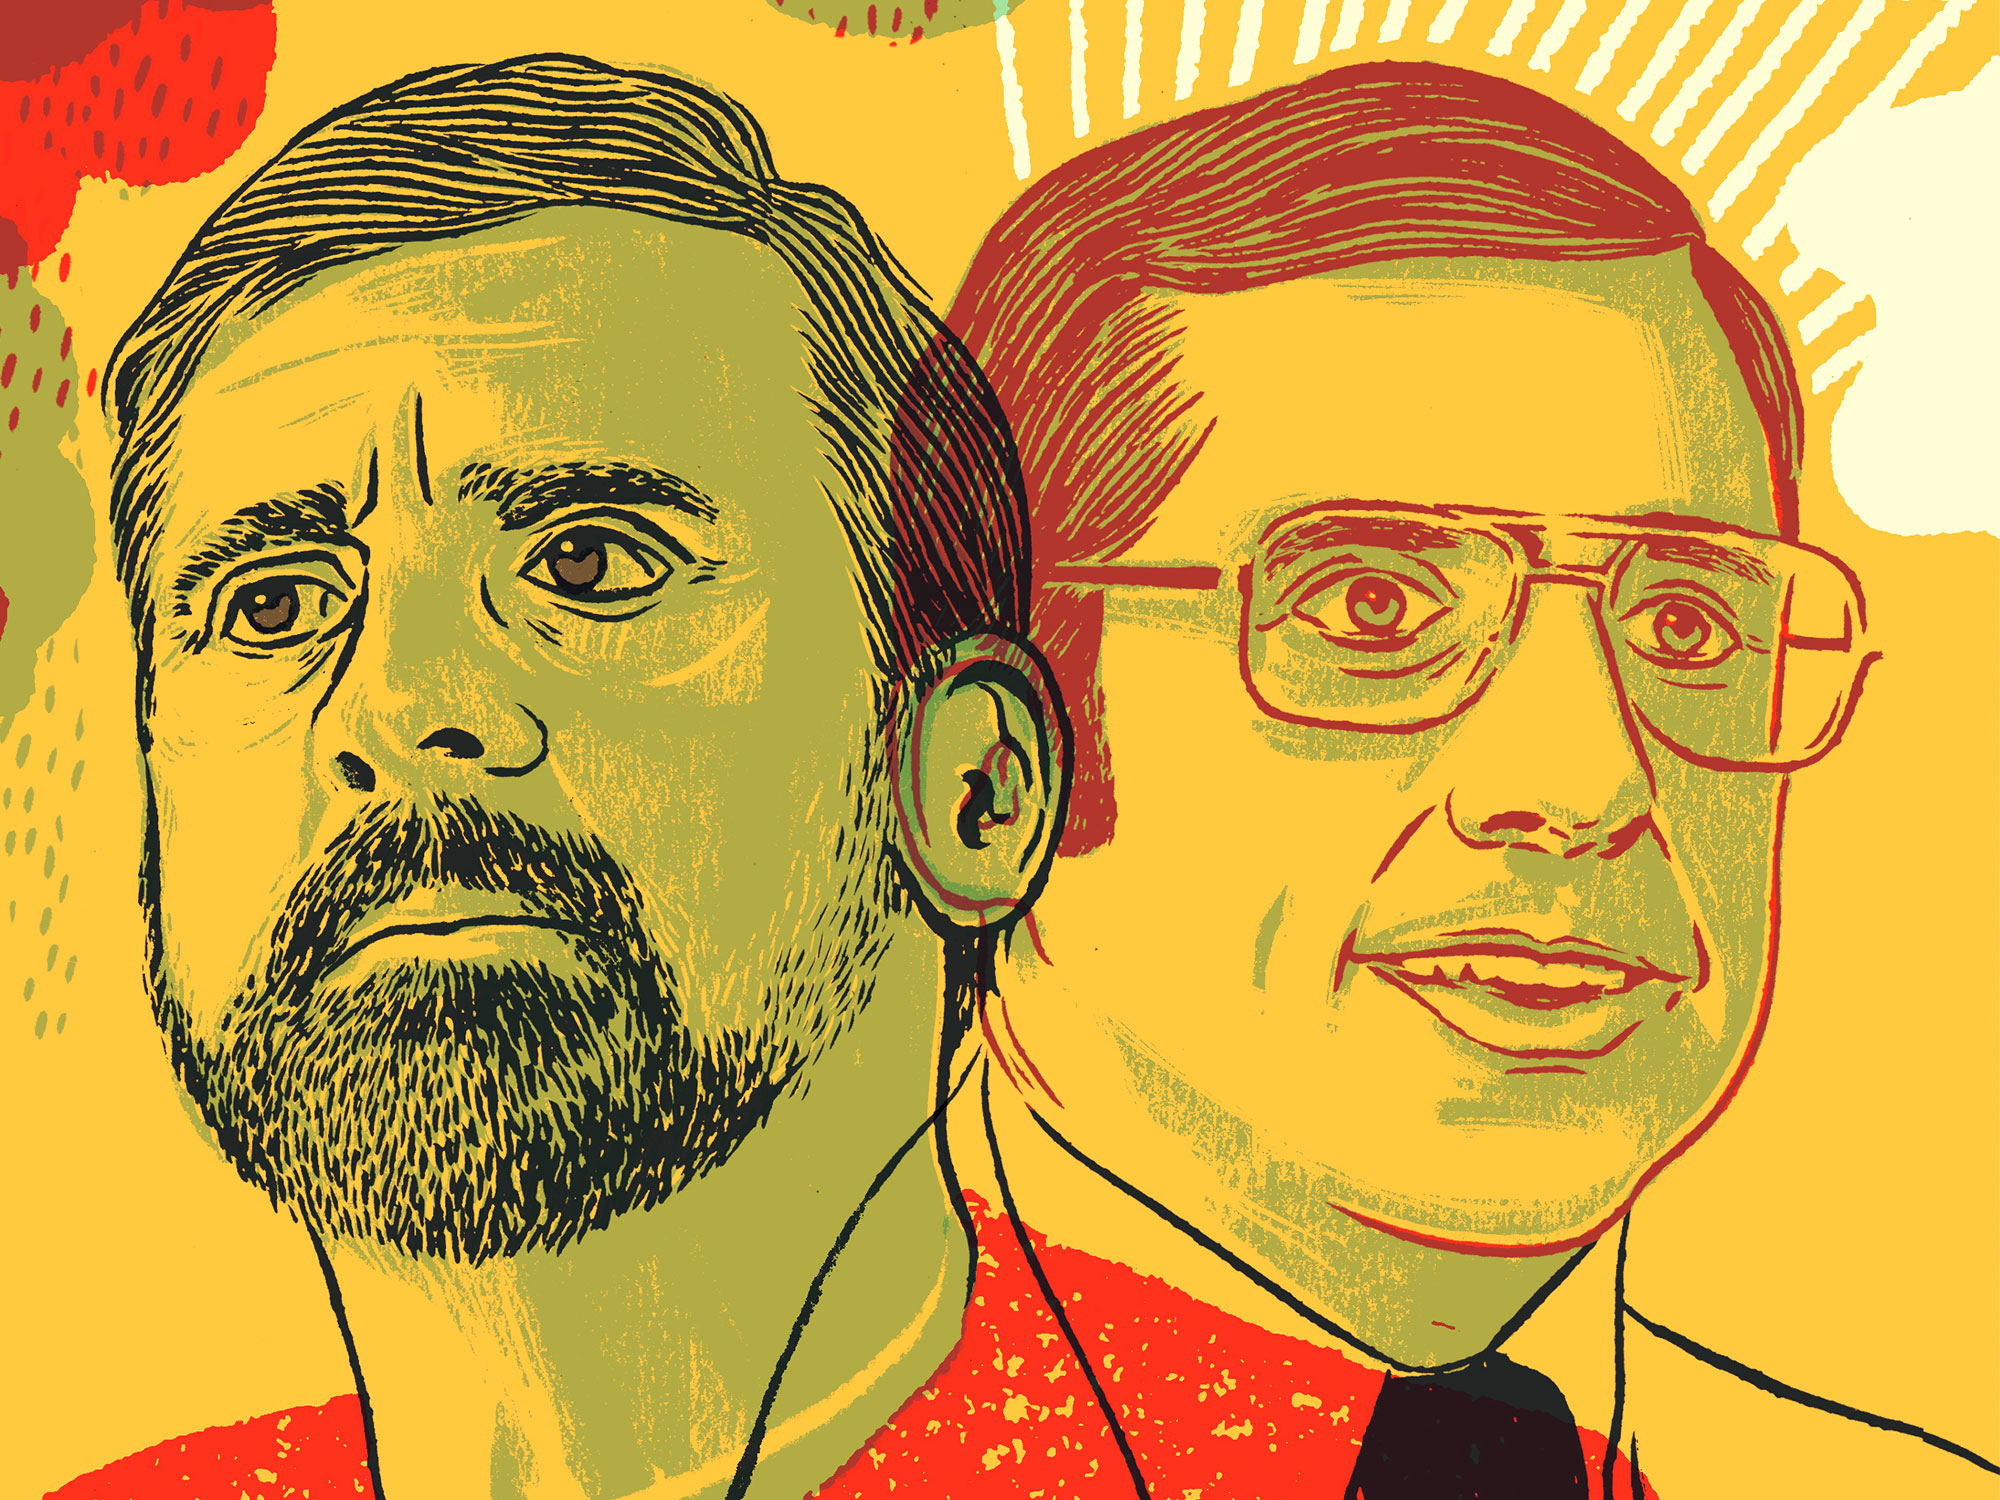 Steve Carell: 'I don't think about comedy and drama as separate genres'